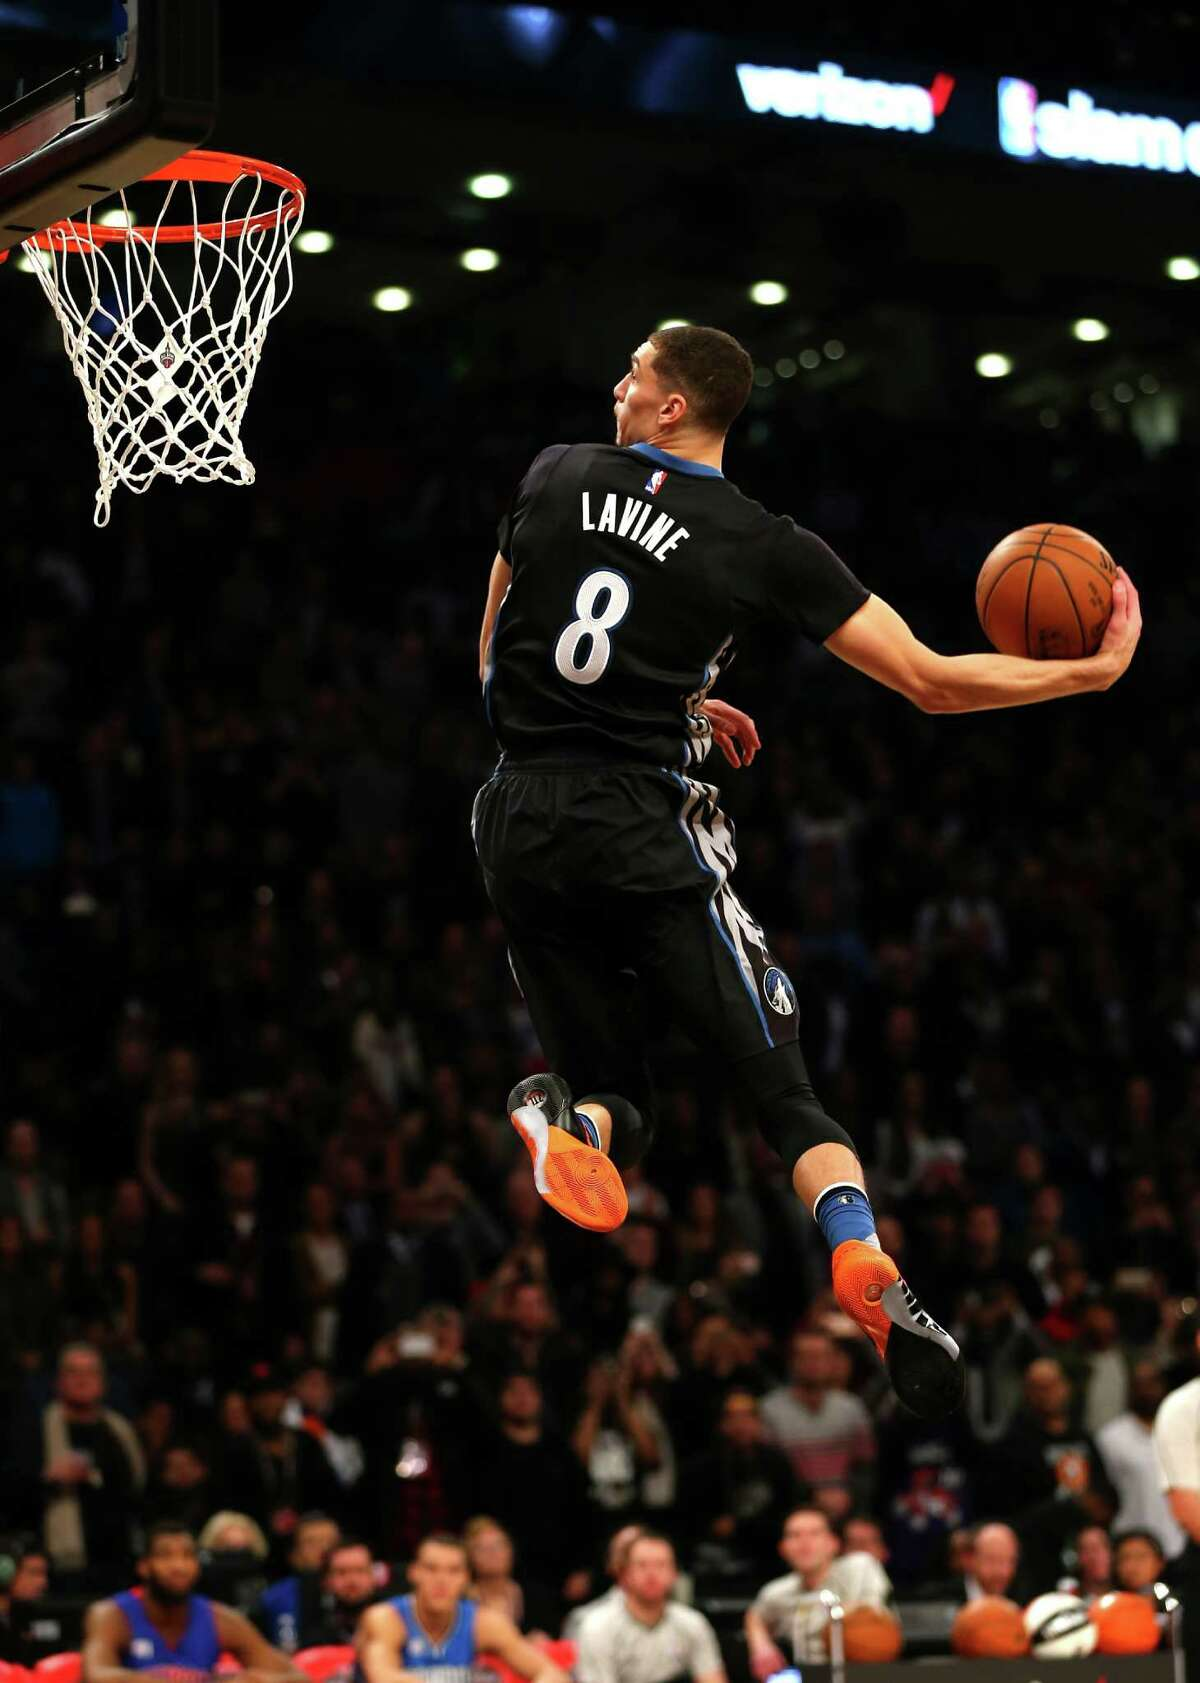 TORONTO, ON - FEBRUARY 13: Zach LaVine of the Minnesota Timberwolves dunks in the Verizon Slam Dunk Contest during NBA All-Star Weekend 2016 at Air Canada Centre on February 13, 2016 in Toronto, Canada. NOTE TO USER: User expressly acknowledges and agrees that, by downloading and/or using this Photograph, user is consenting to the terms and conditions of the Getty Images License Agreement.